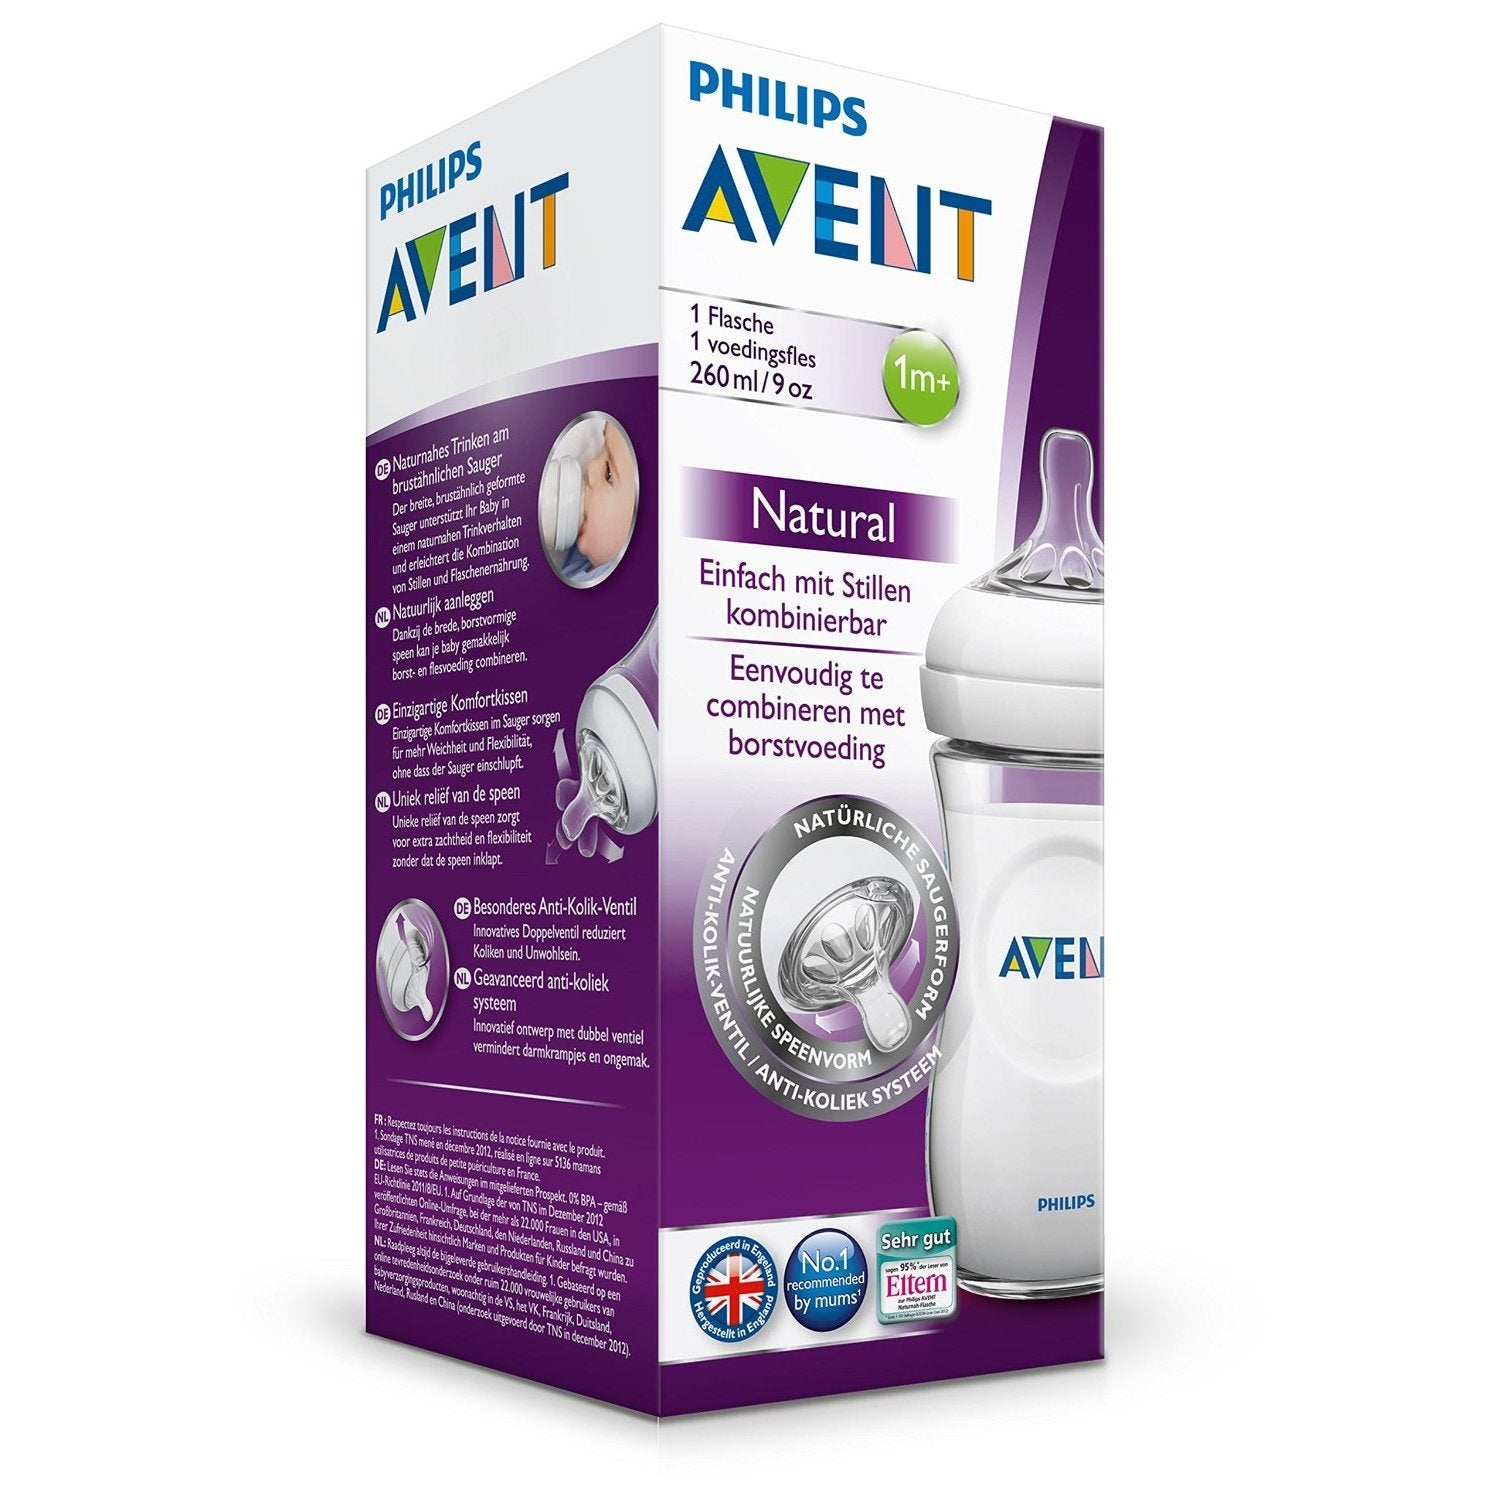 Philips Avent 9 Ounce Natural Bottle With Medium Flow Nipple 2 Pack New Skin Soft 3m And Brush Free Shipping On Orders Over 45 Overstock 22959421